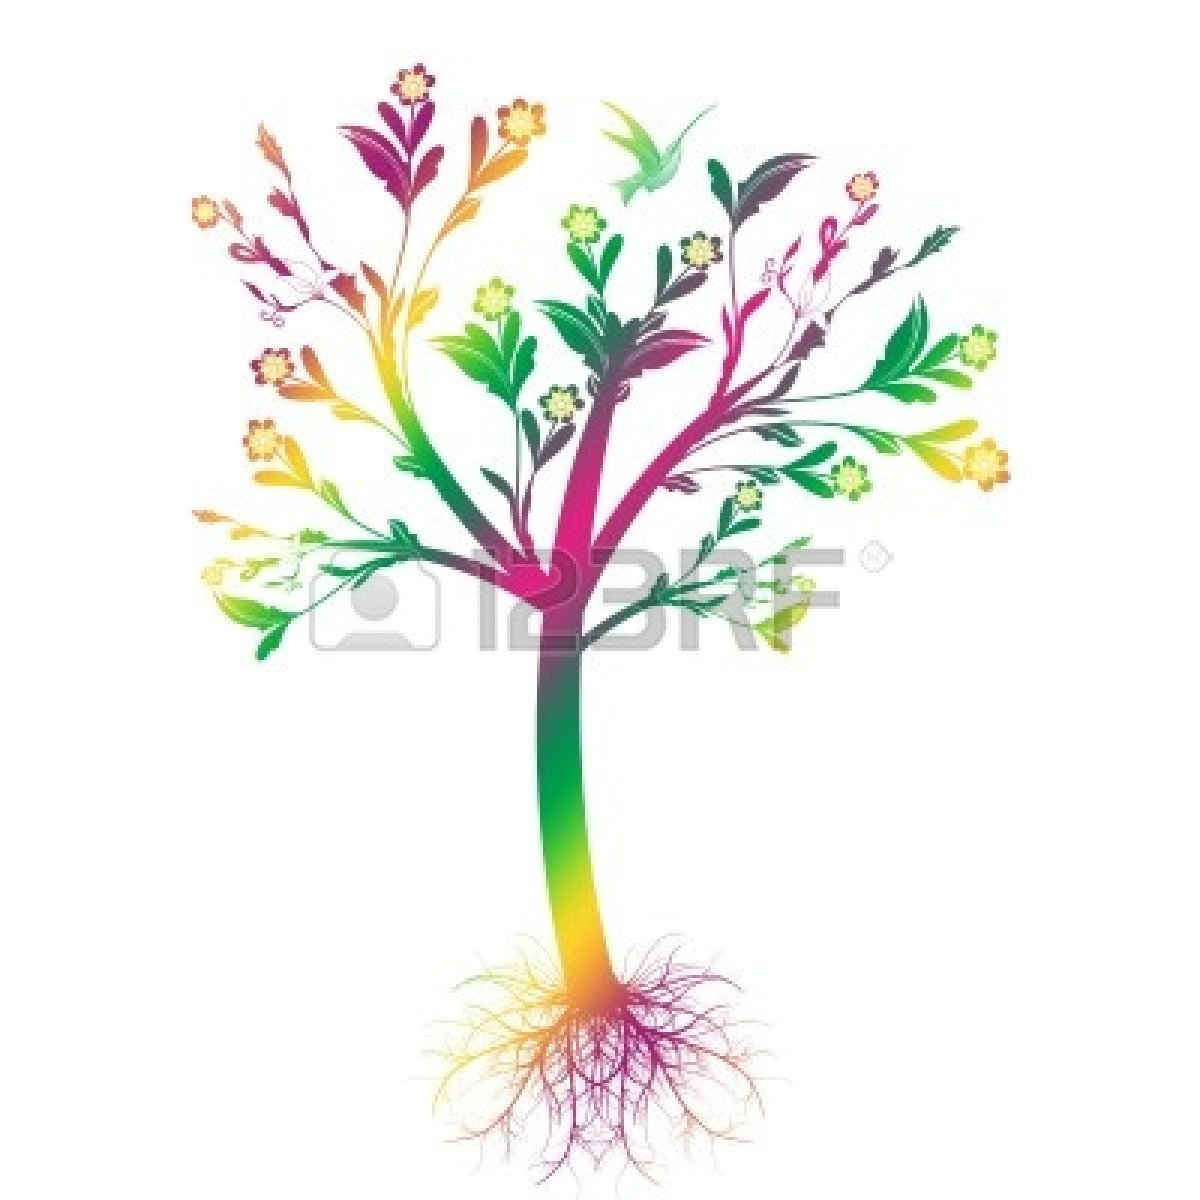 1200x1200 Family Tree Clip Art Family Tree Family Reunion